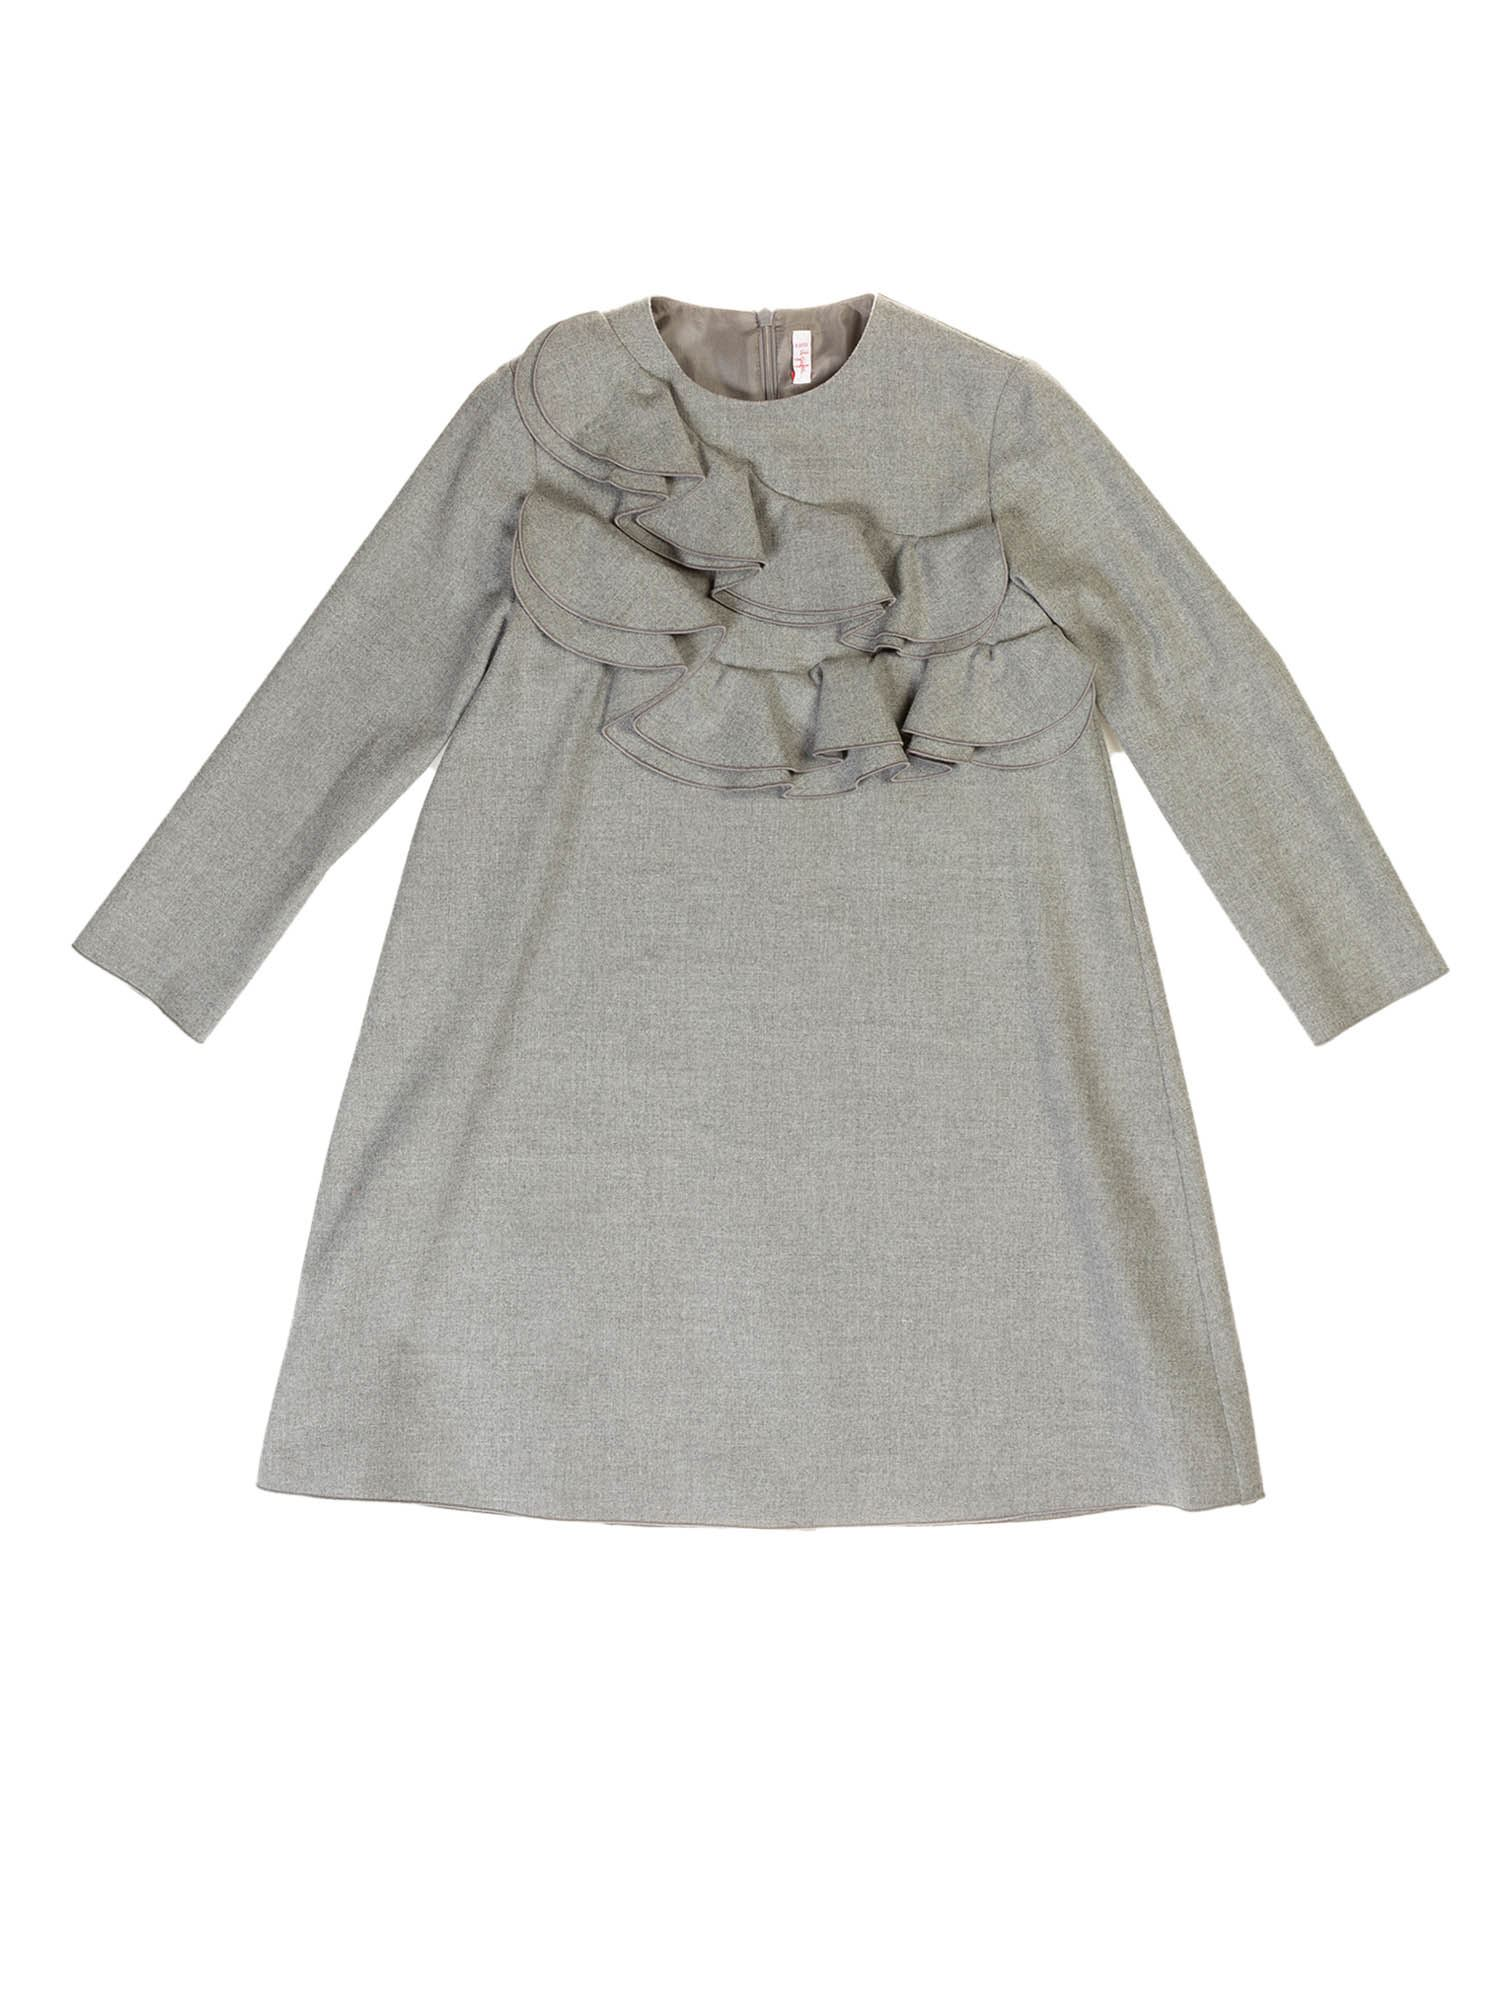 Il Gufo ROUCHES DRESS IN GREY